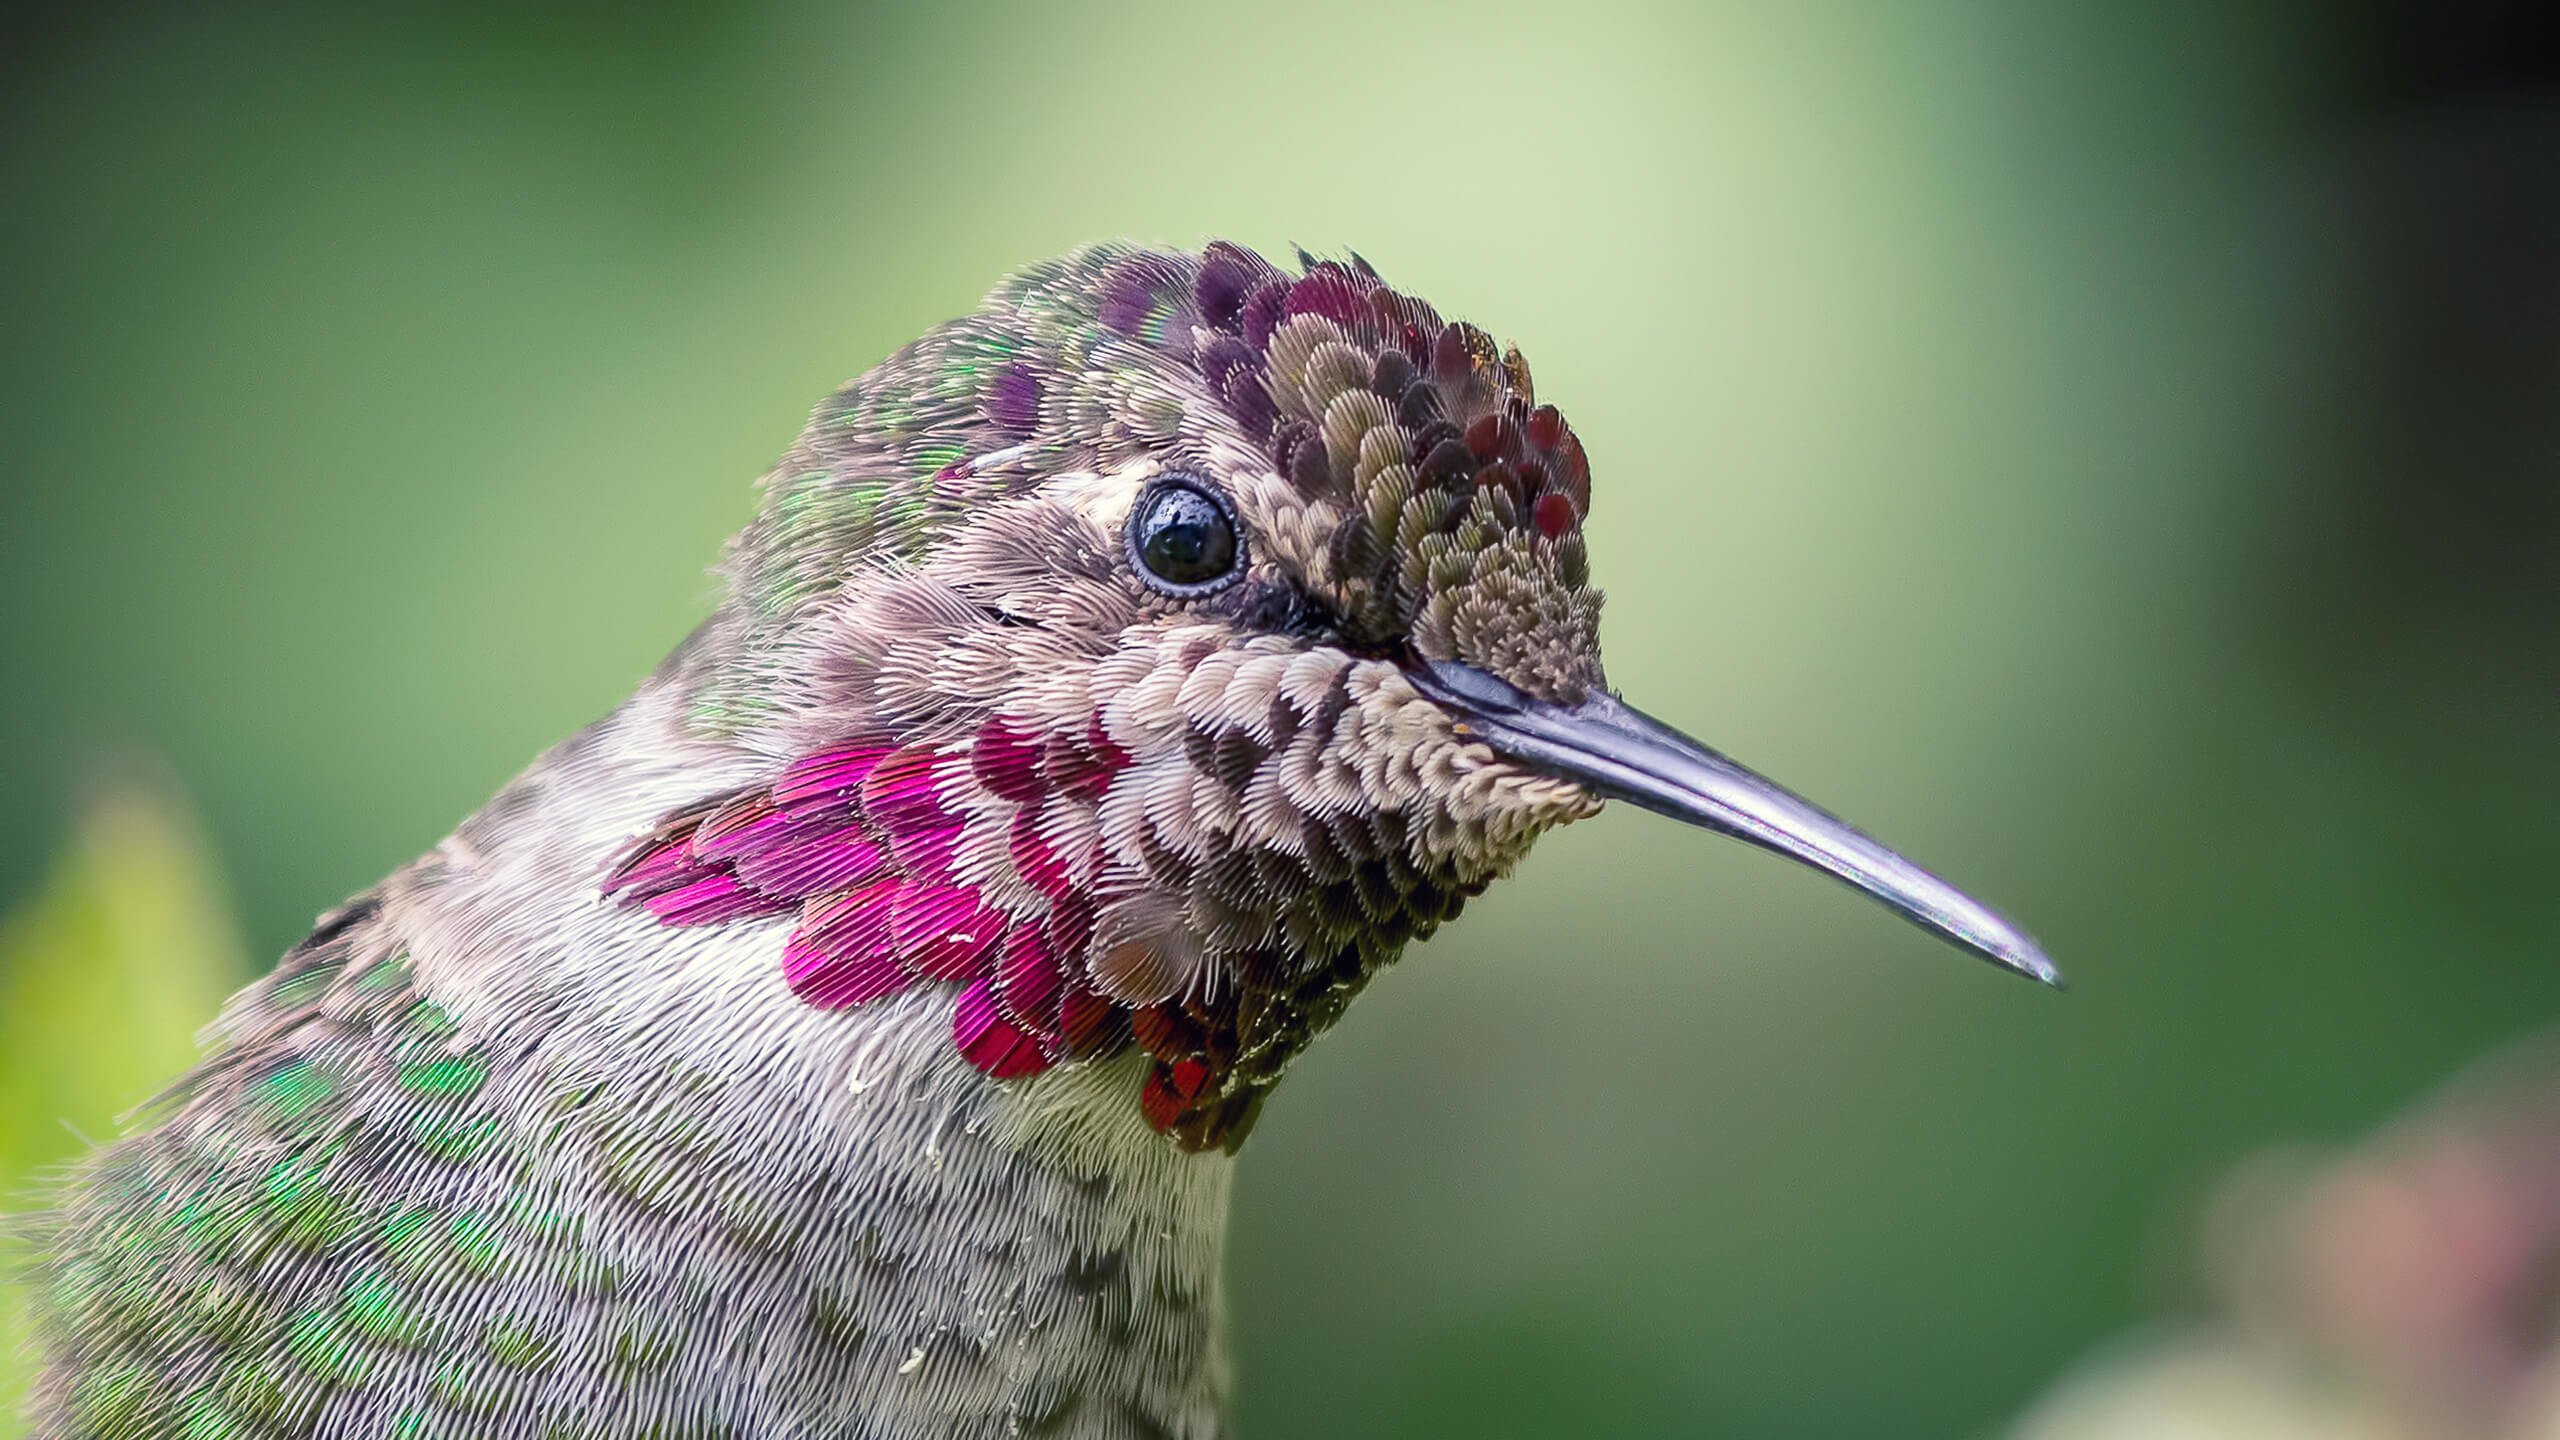 Anna's Hummingbird Wallpaper for Desktop 2560x1440